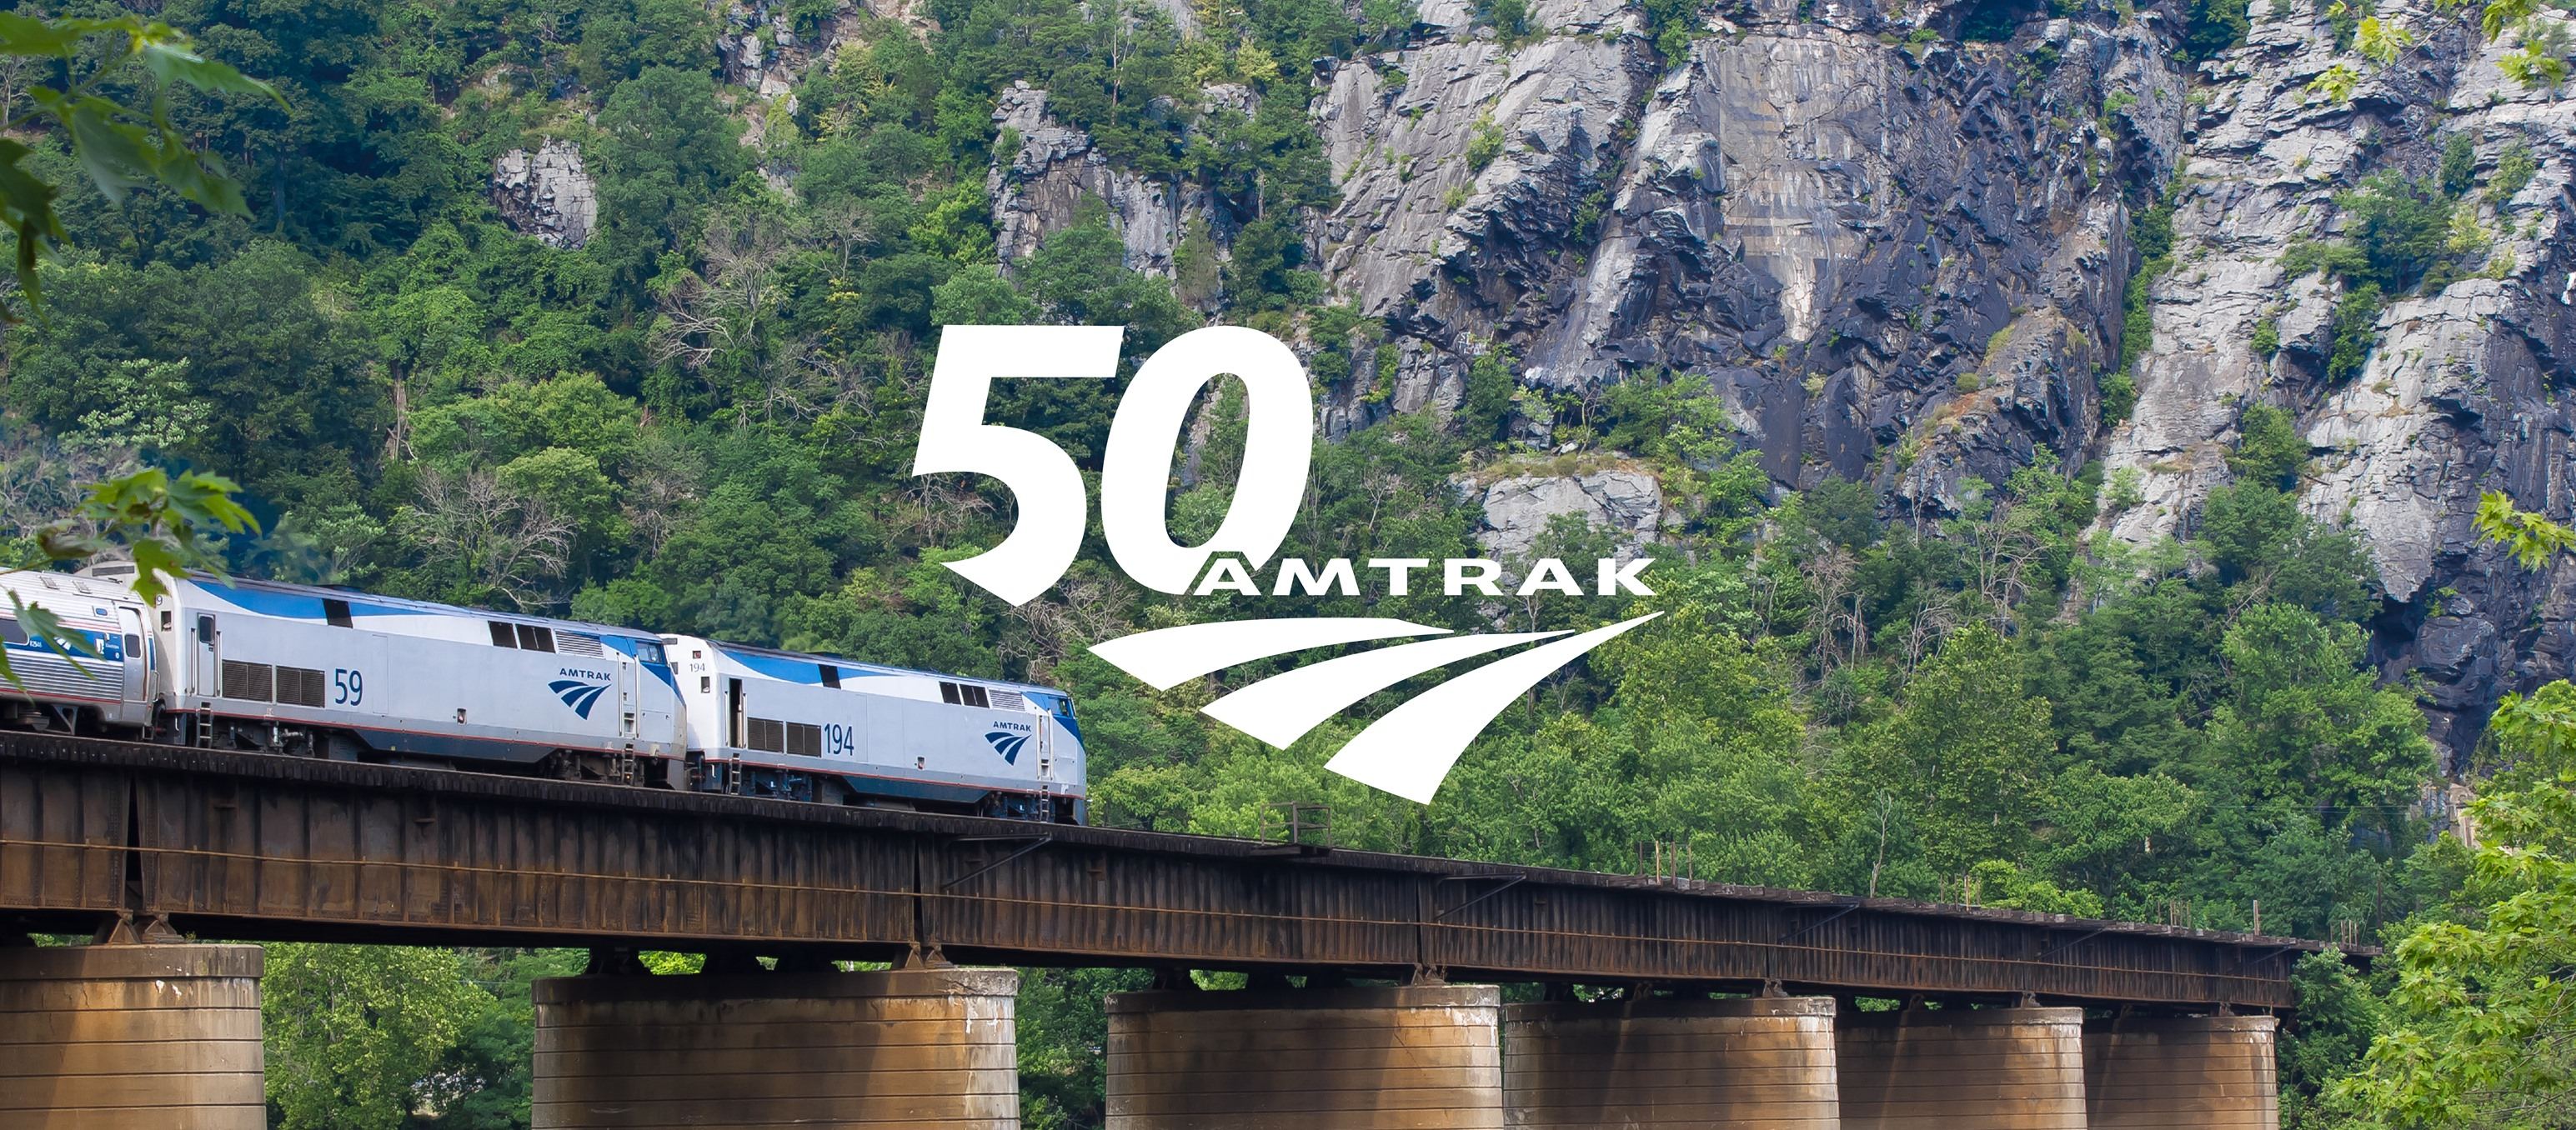 About Amtrak